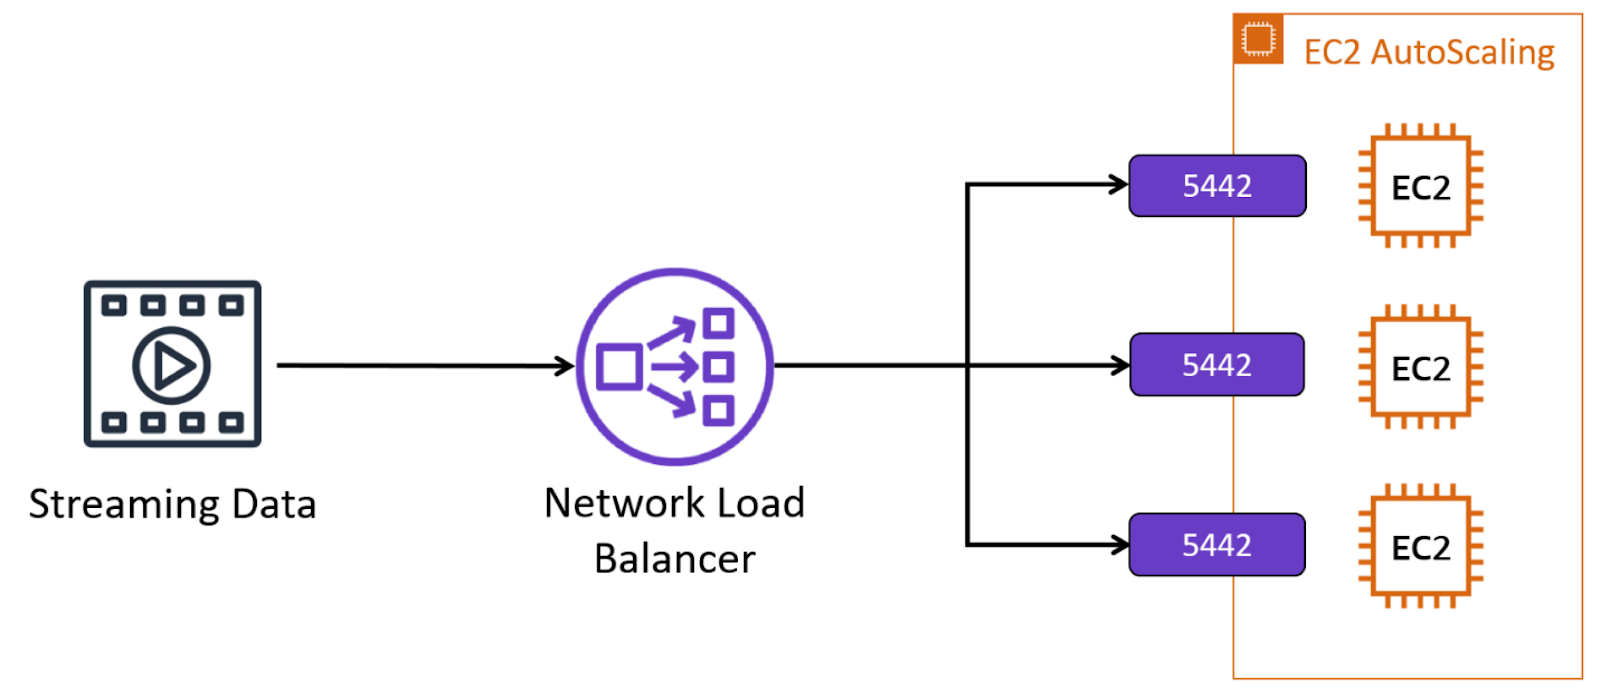 Streaming data connected to Network Load Balancer and splitting into three streams connected to different EC2 instances within an EC2 Auto Scaling group